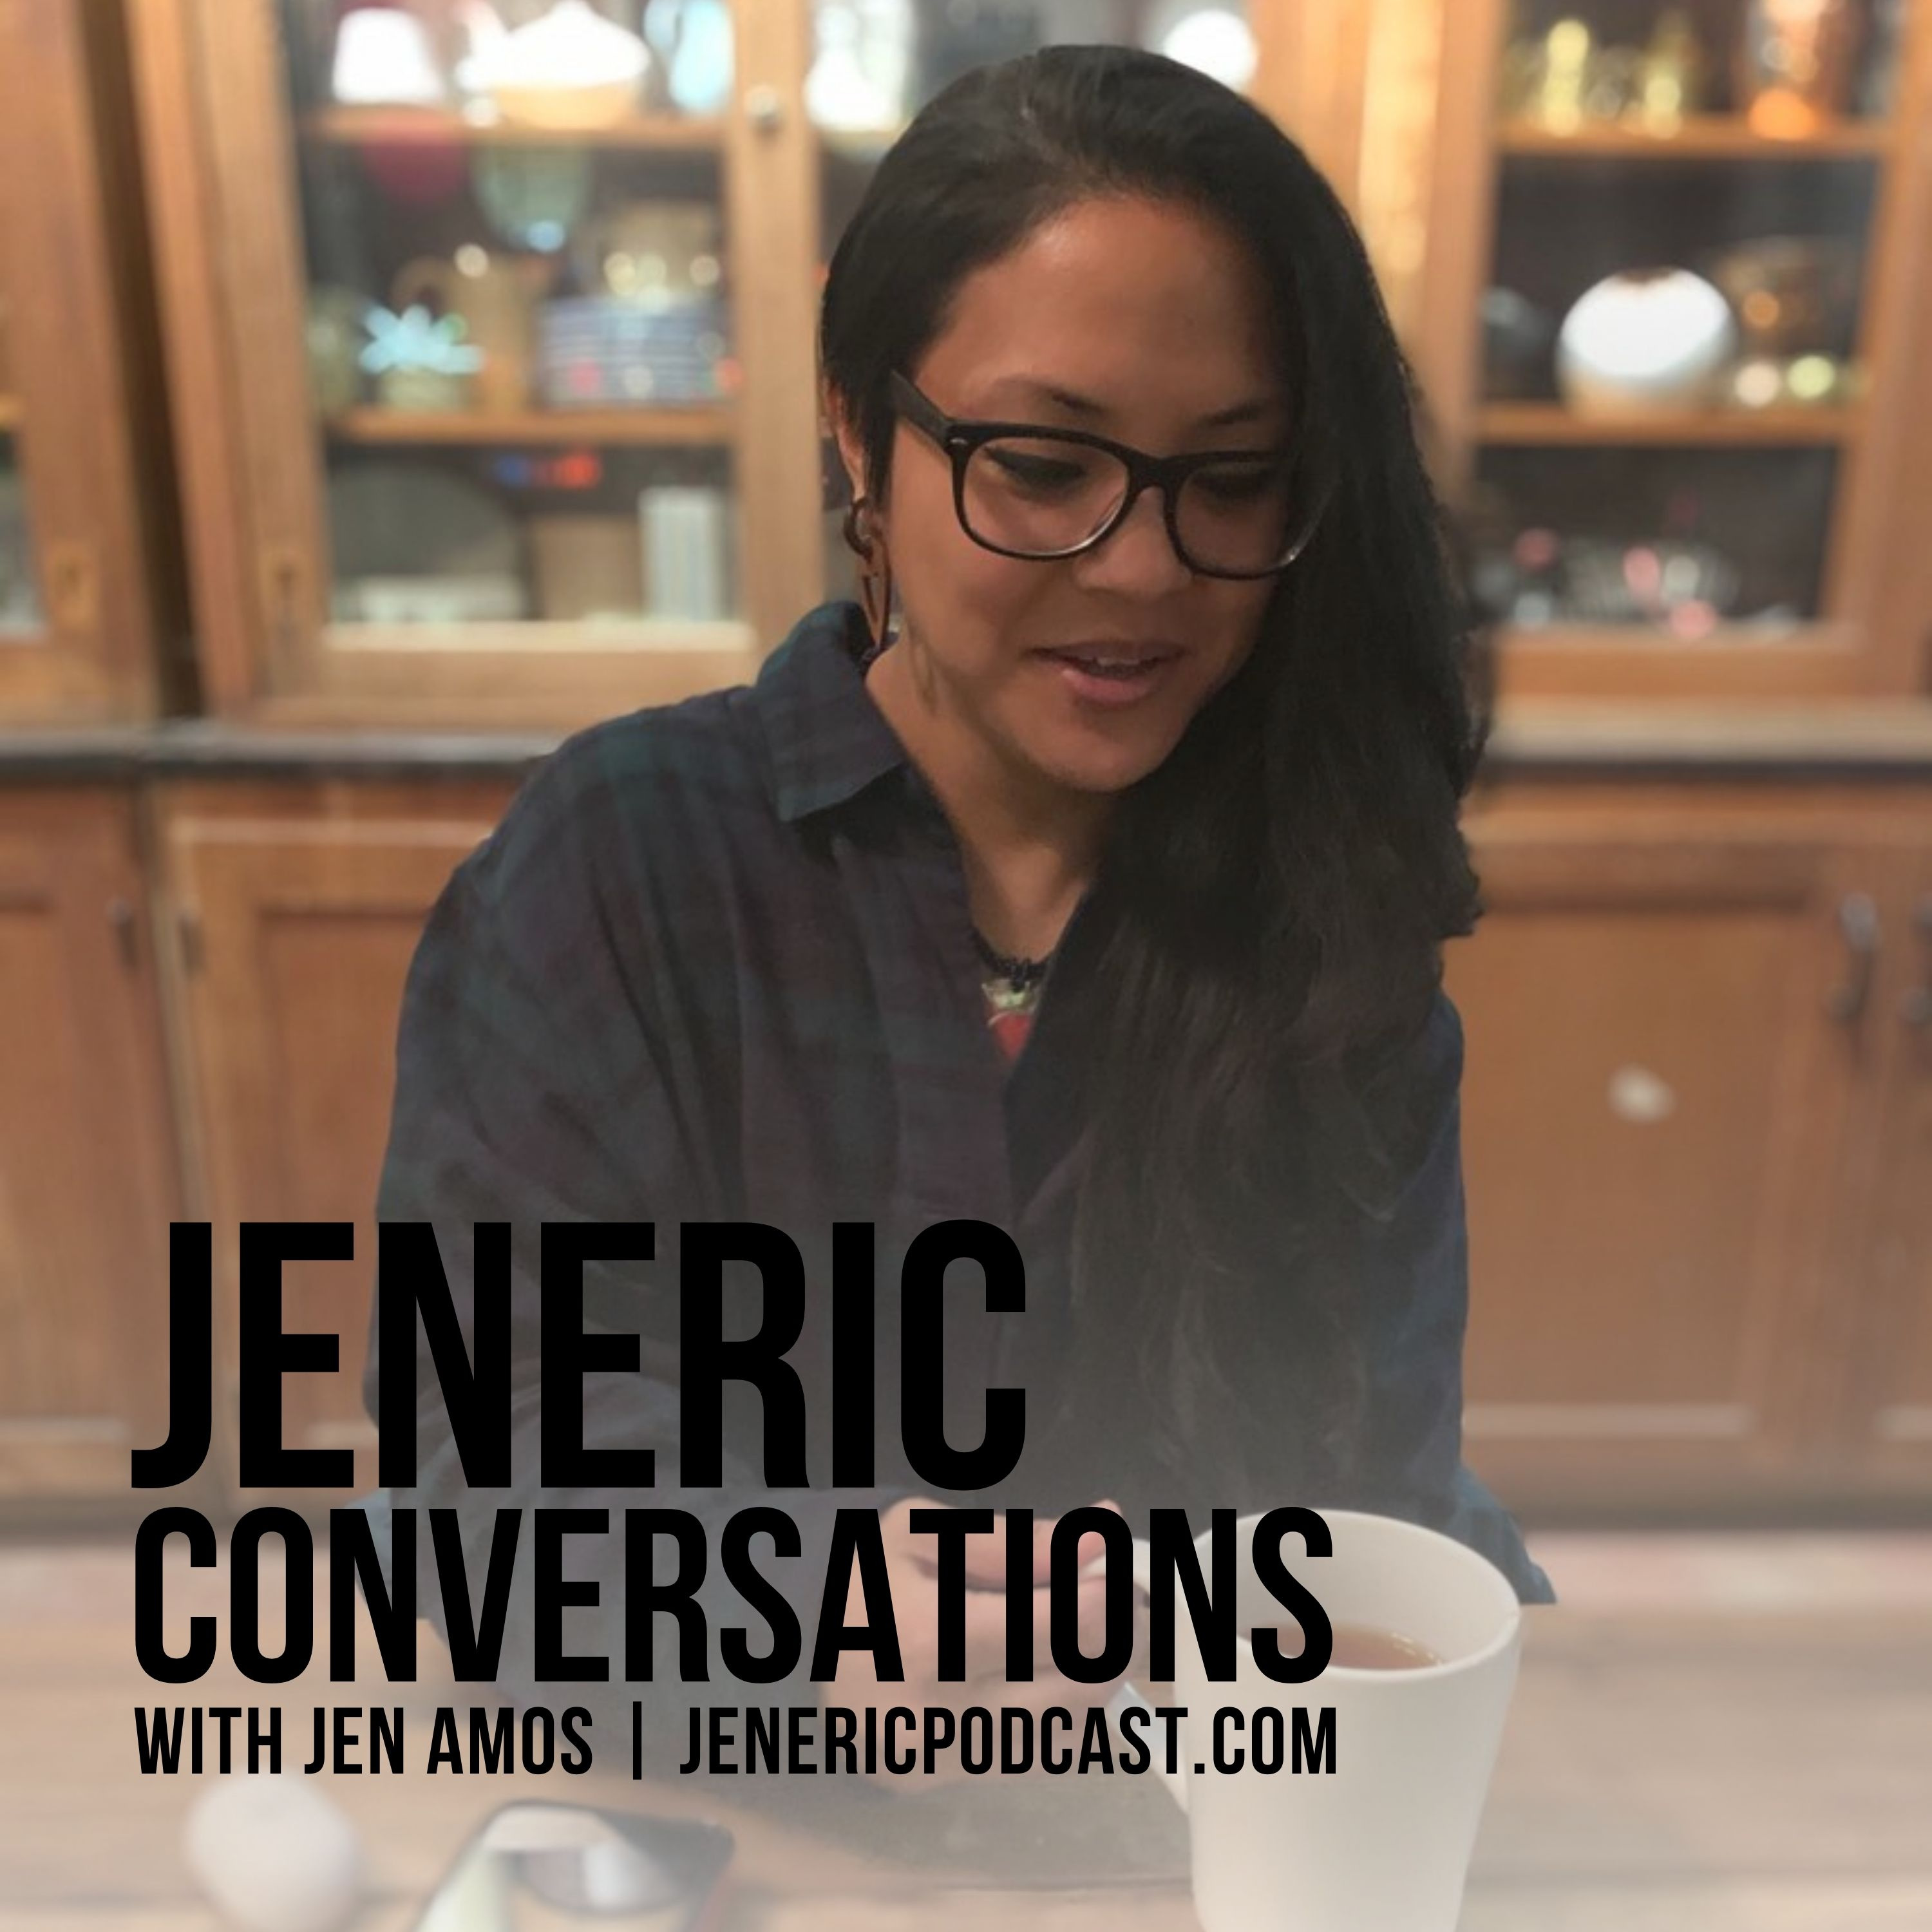 Show artwork for Jeneric Conversations